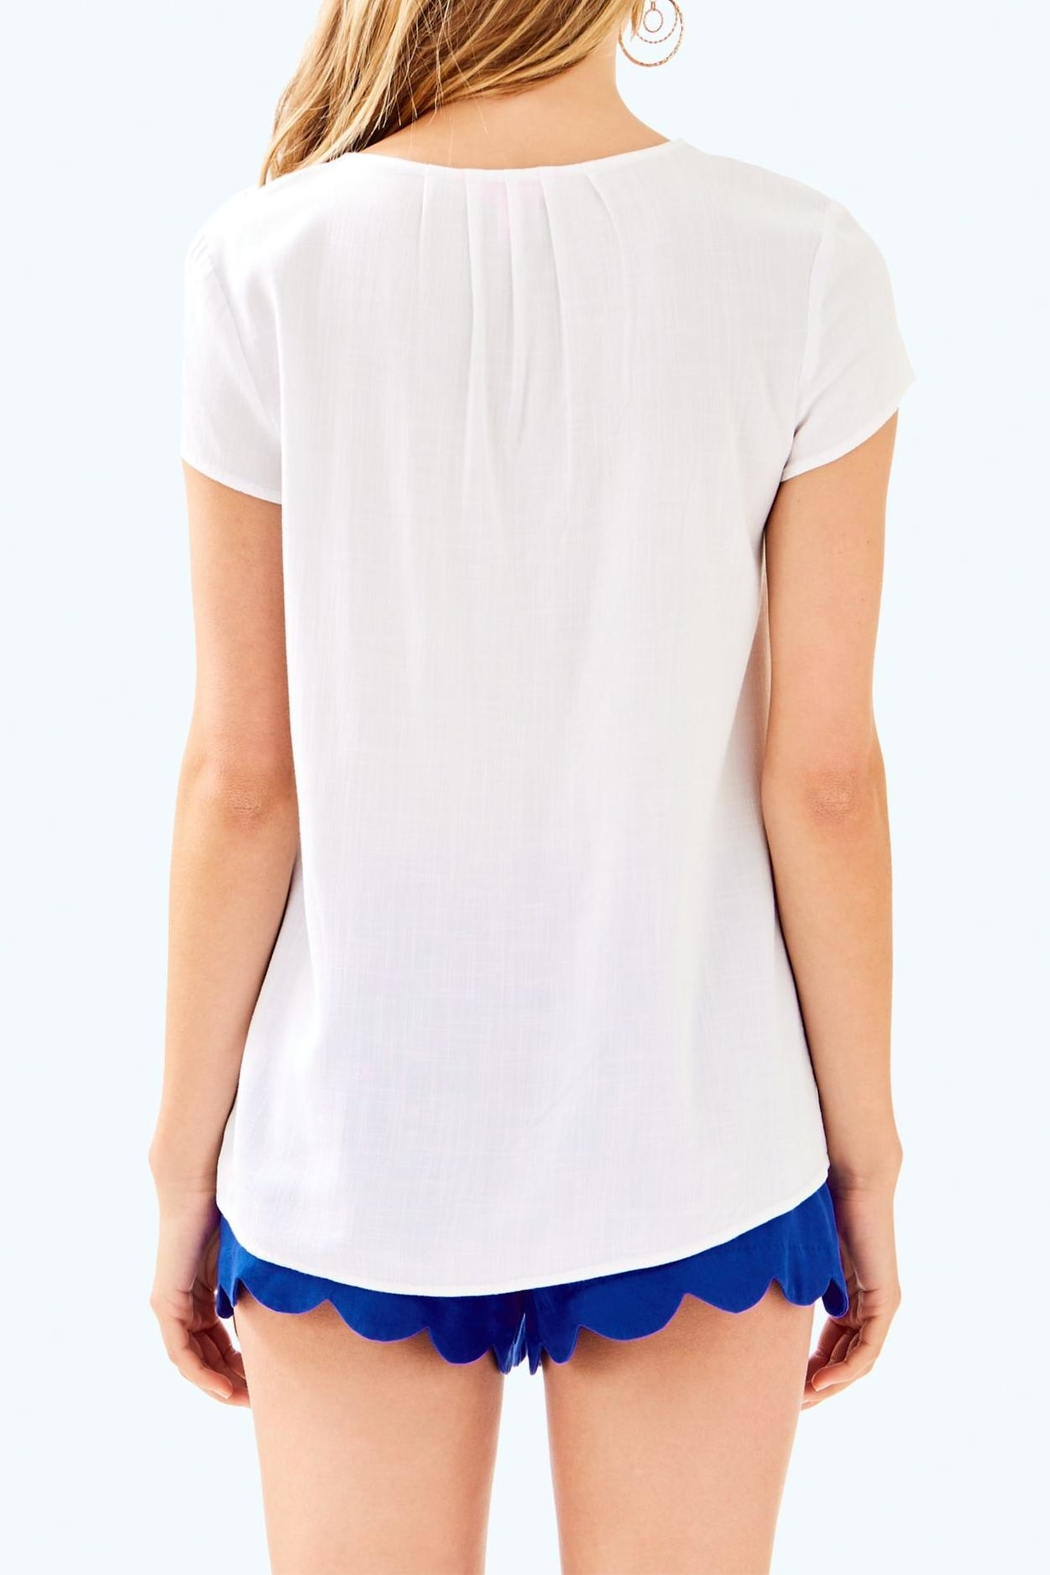 Lilly Pulitzer Sea Ave Top - Front Full Image